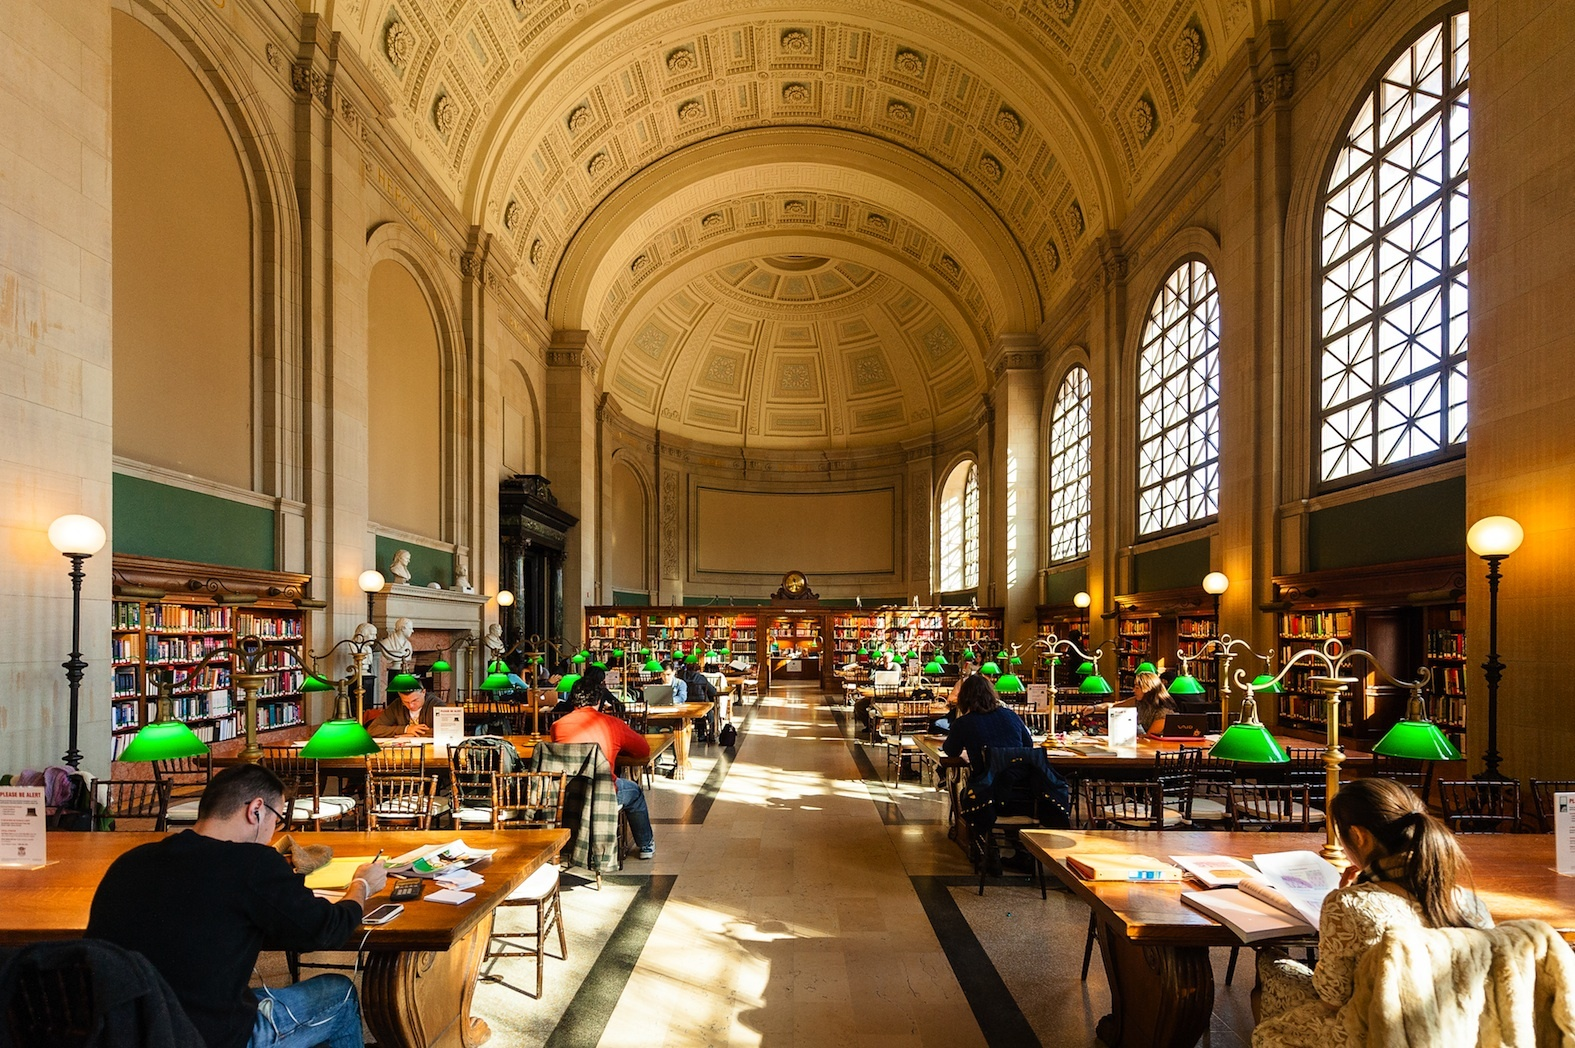 Take an architectural or art tour of the Boston Public Library